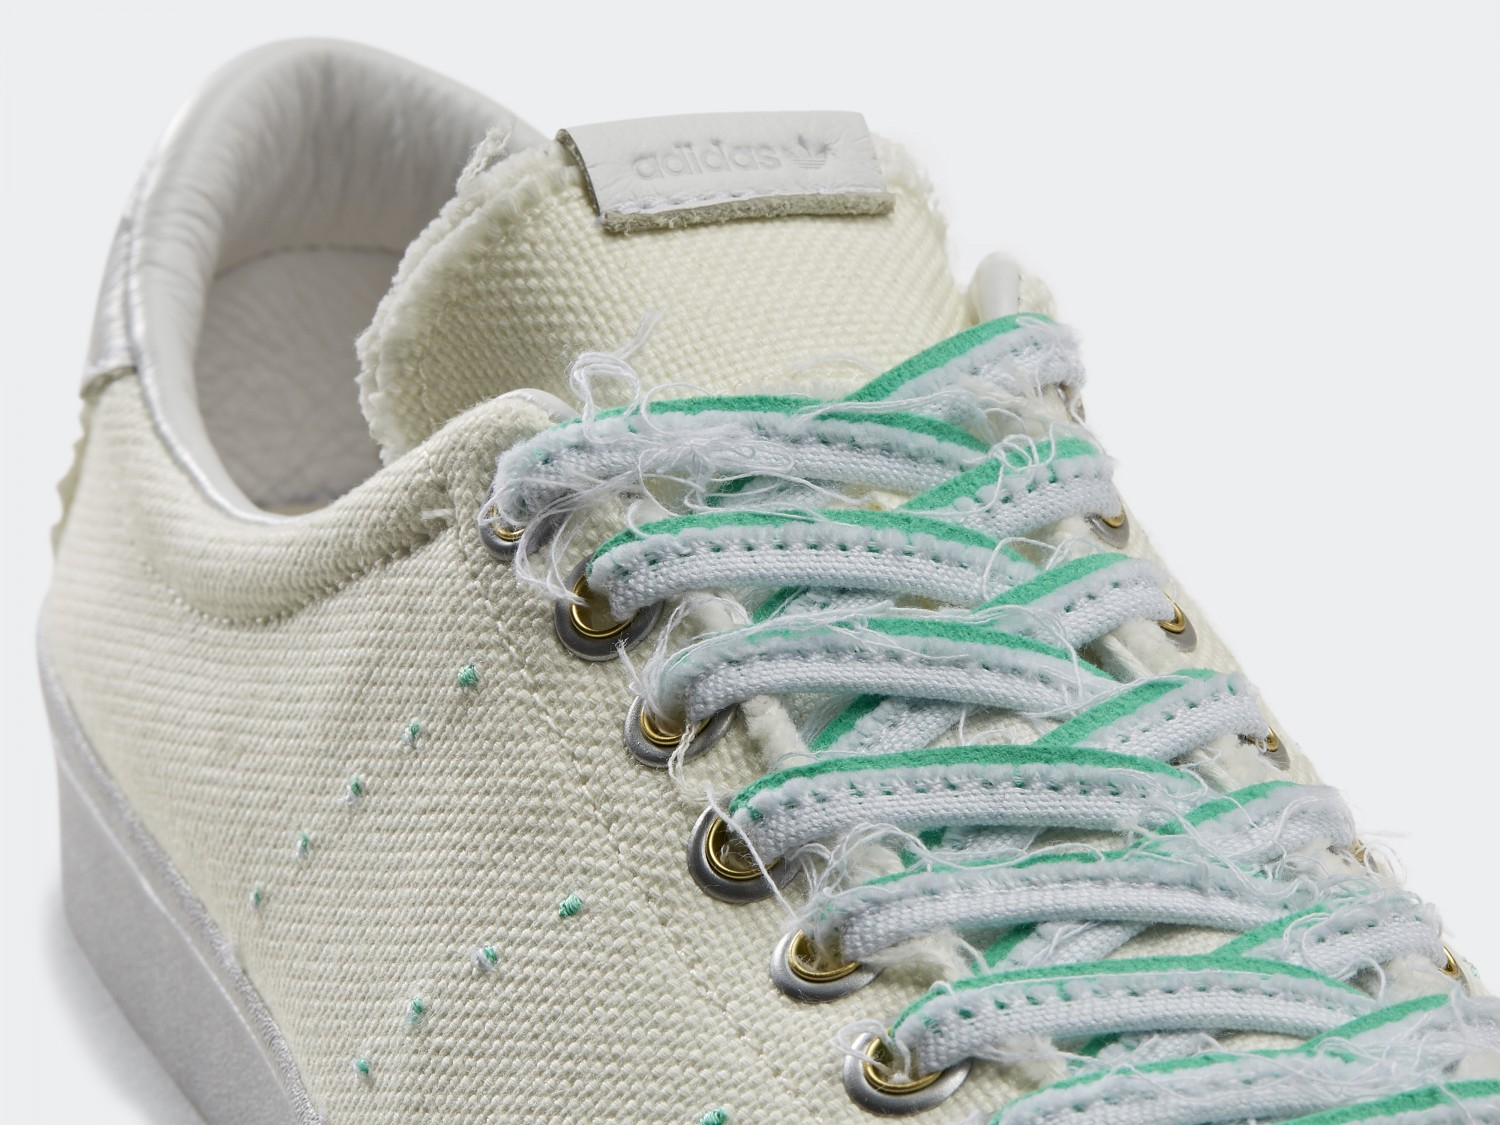 573cd88164d79 Those who purchased the sneakers will receive them in an inside-out Adidas  Original box that they will have to open using a tear strip, and each pair  of ...